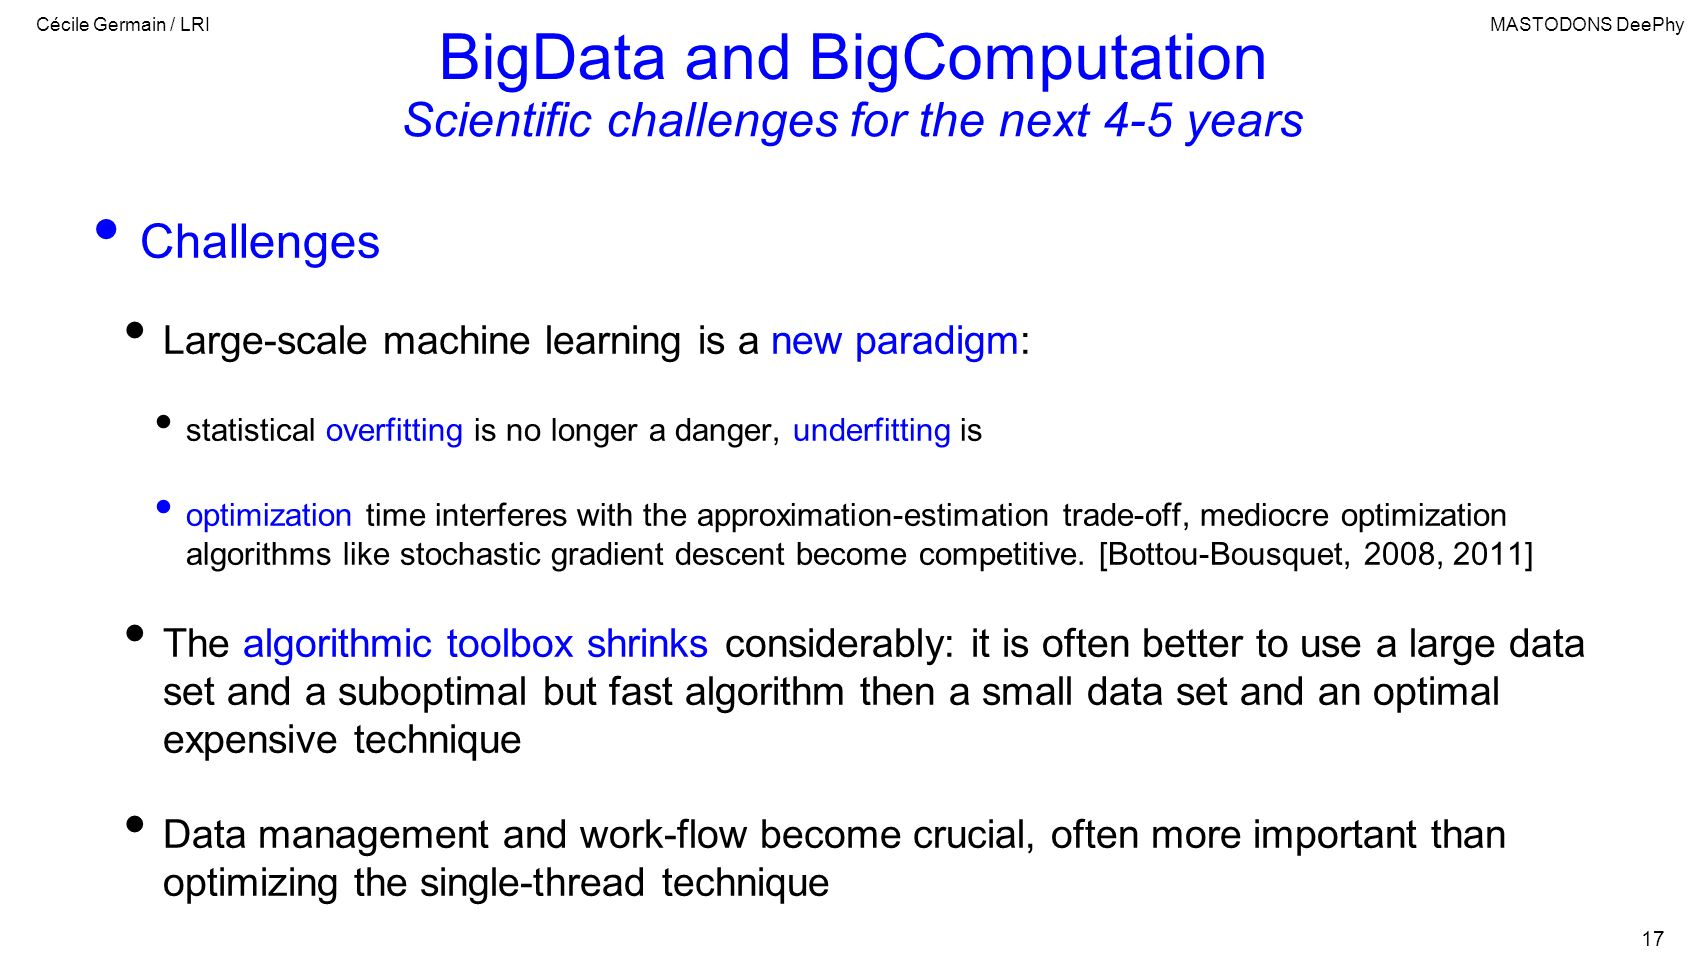 Cécile Germain / LRIMASTODONS DeePhy 17 BigData and BigComputation Scientific challenges for the next 4-5 years Challenges Large-scale machine learning is a new paradigm: statistical overfitting is no longer a danger, underfitting is optimization time interferes with the approximation-estimation trade-off, mediocre optimization algorithms like stochastic gradient descent become competitive.